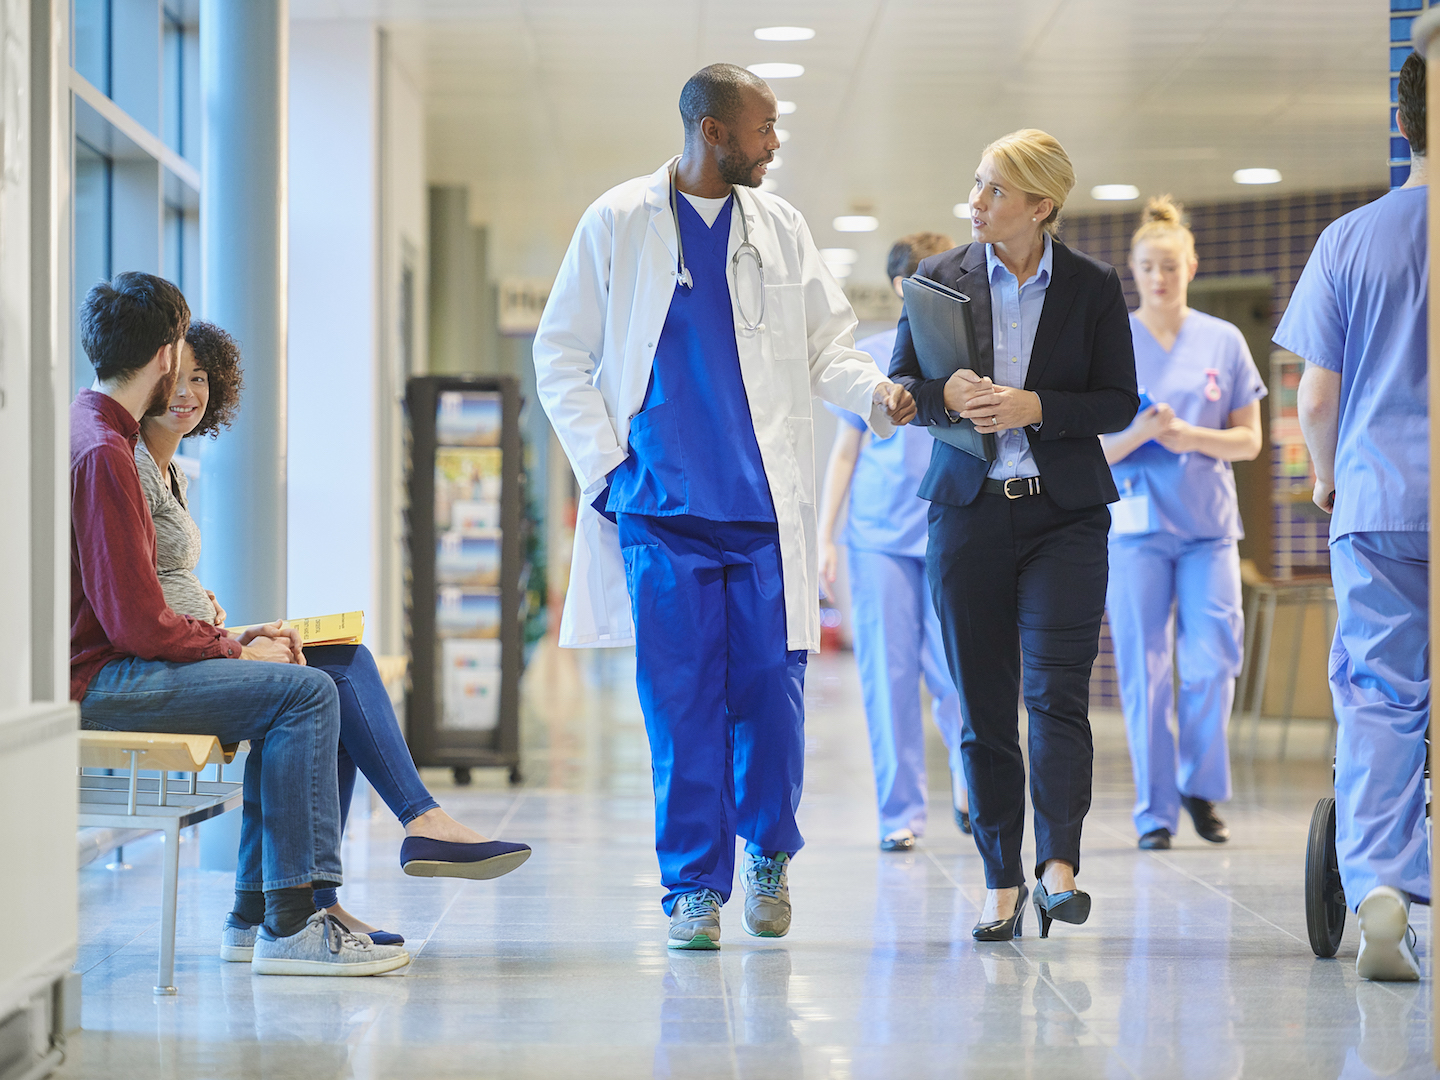 Doctors Walking in Hospital Hallway